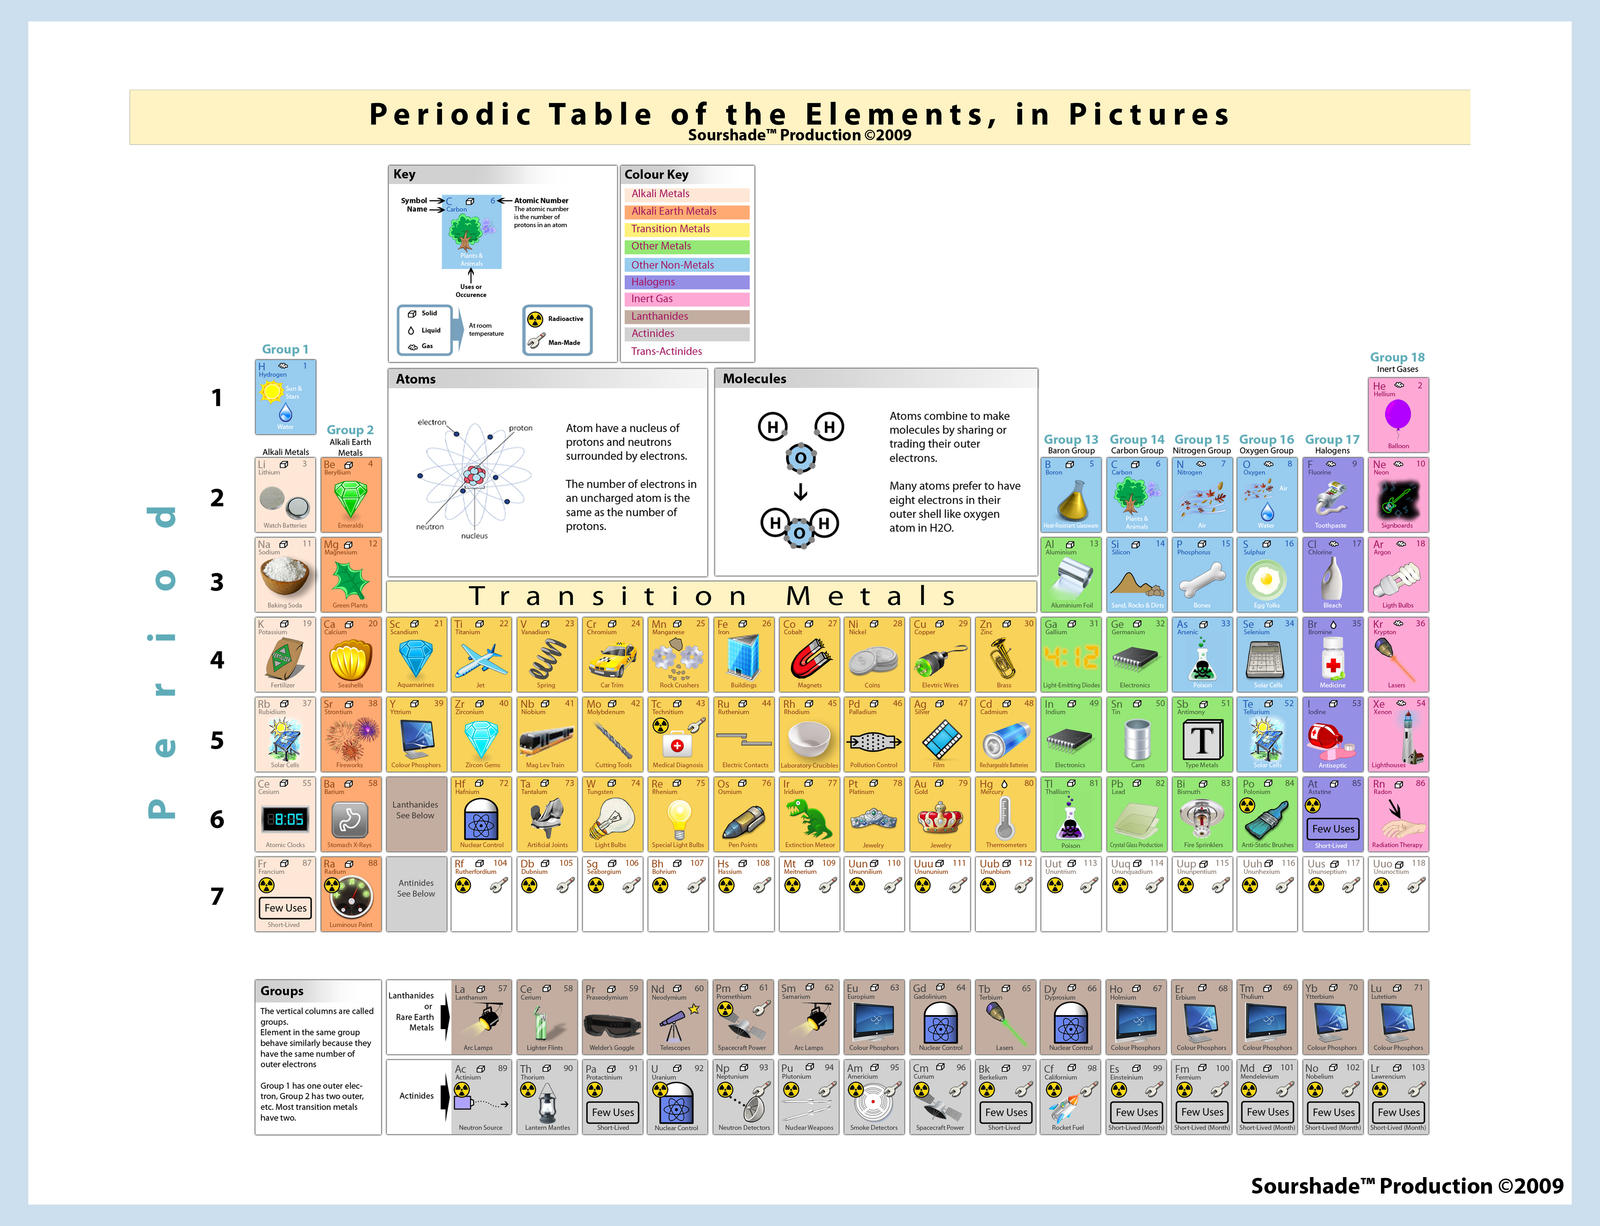 Periodic table of the elements by sourshade on deviantart periodic table of the elements by sourshade gamestrikefo Images